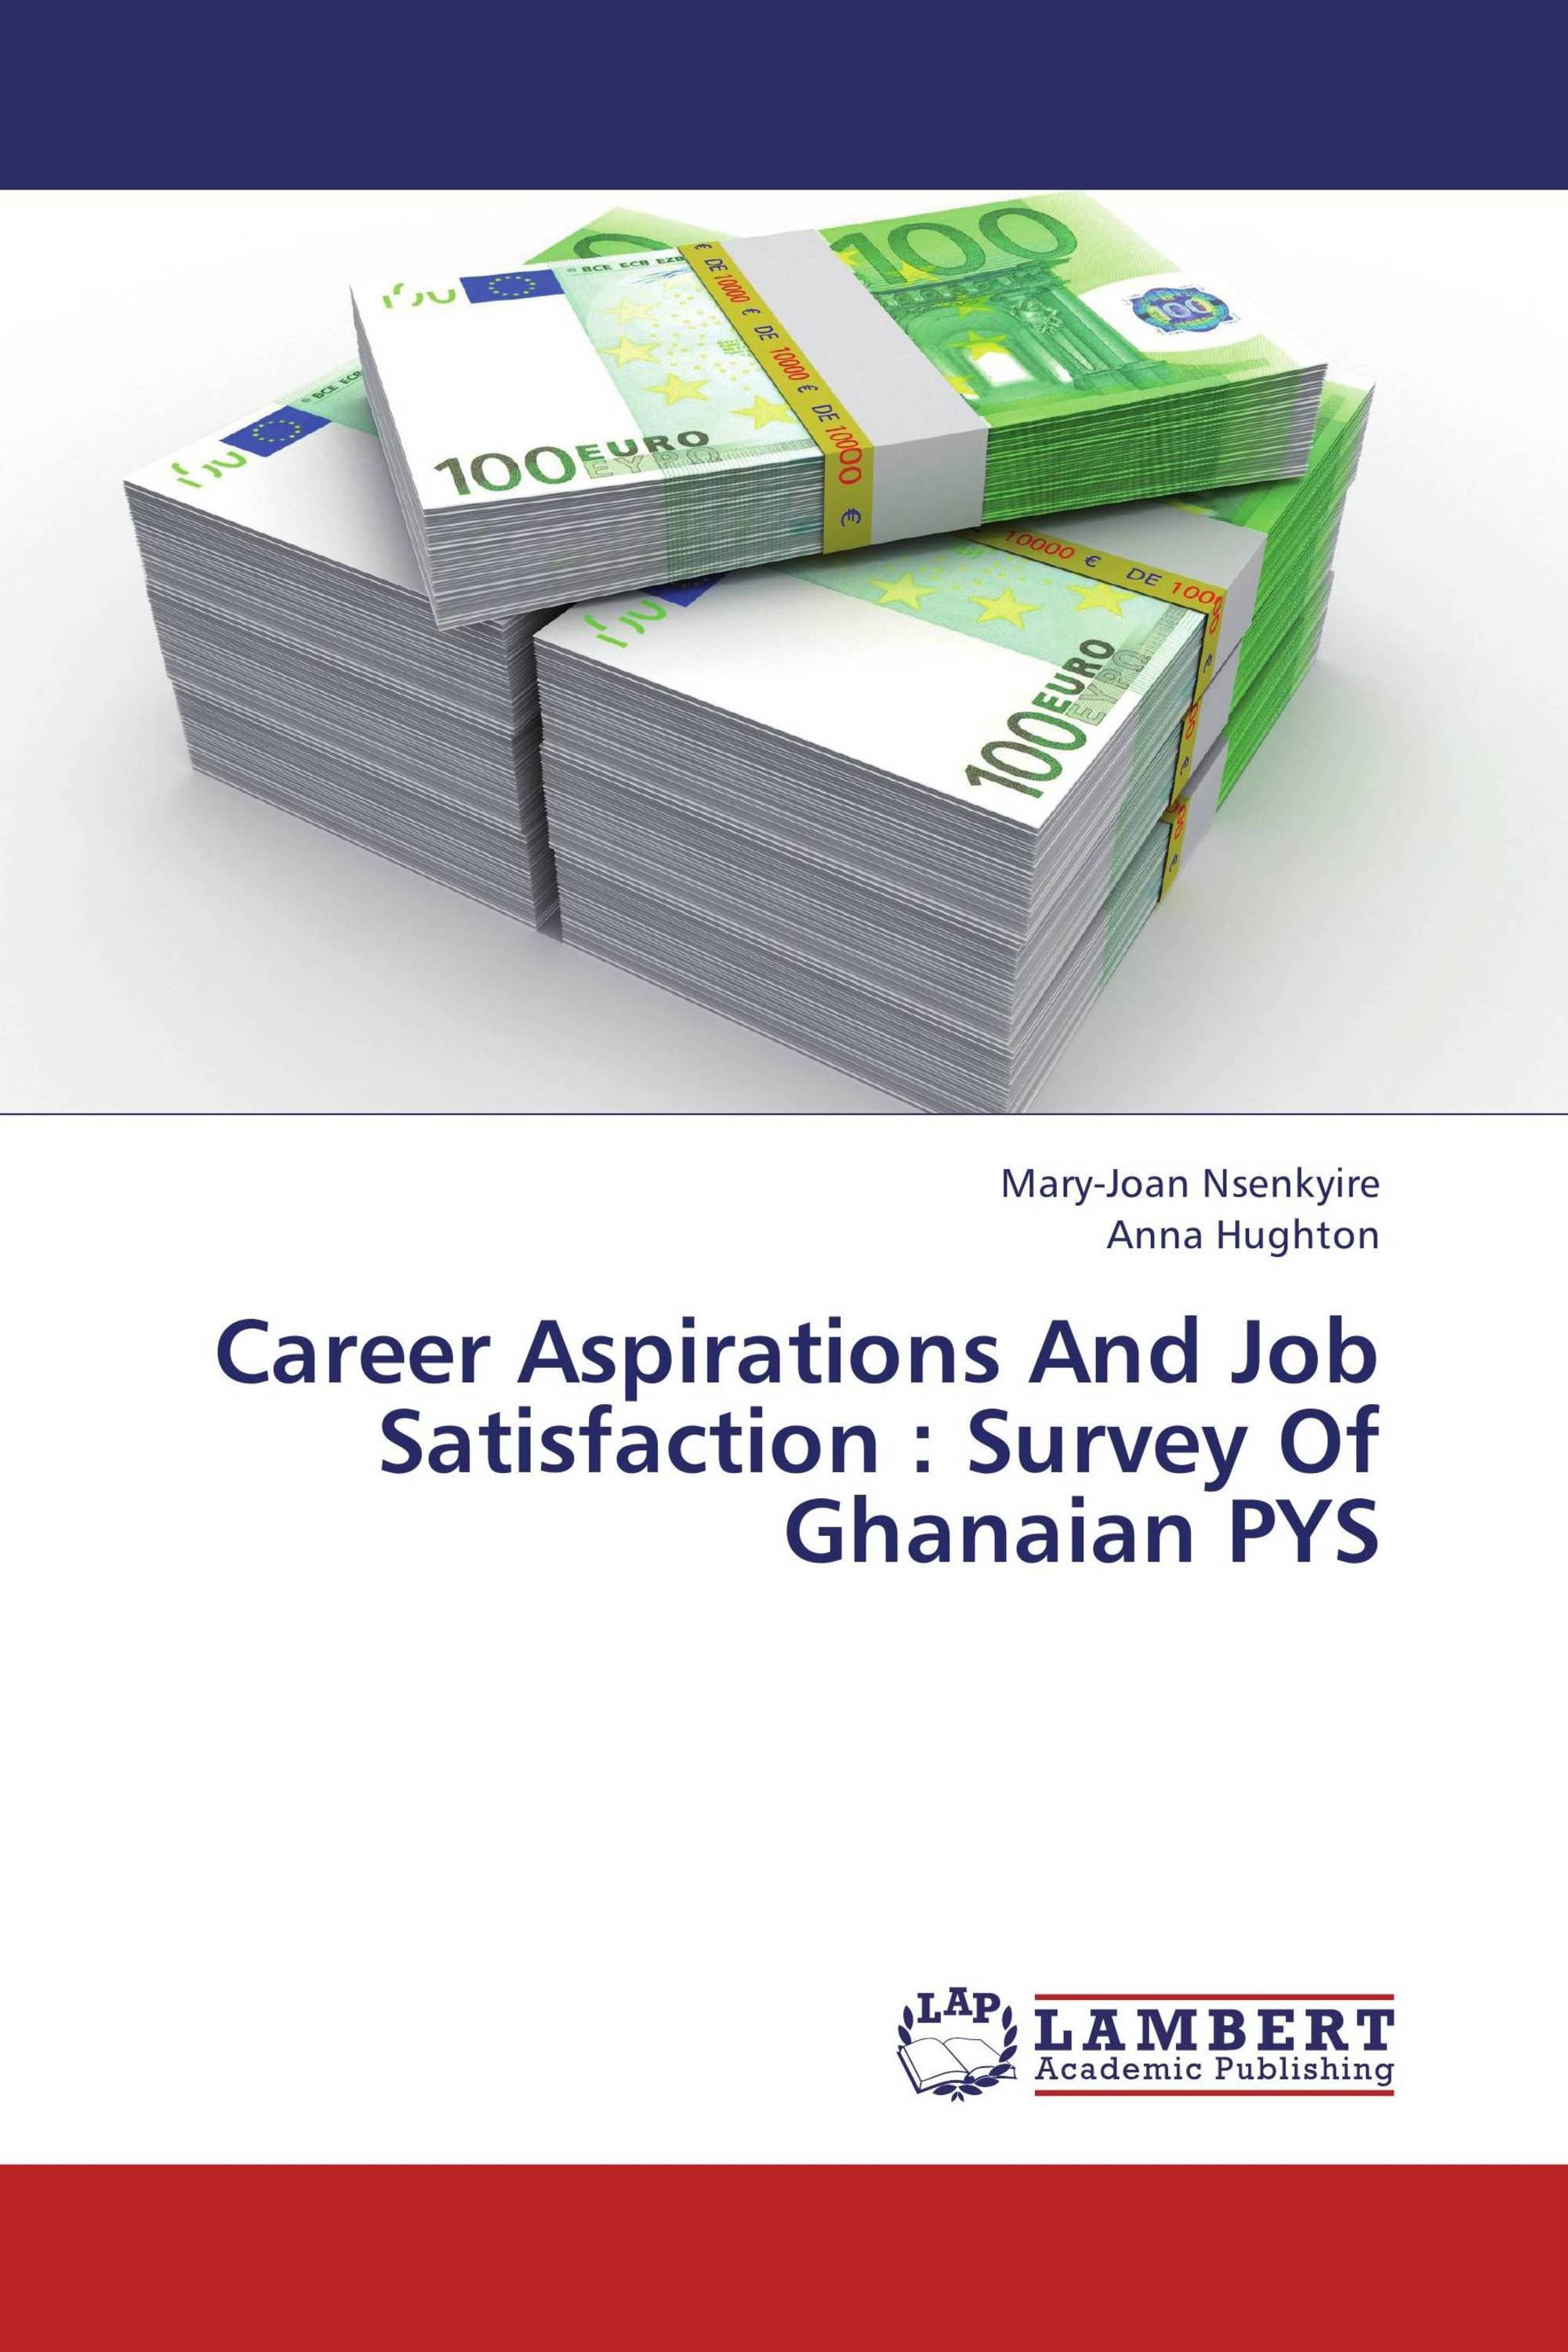 career aspirations and job satisfaction survey of ian pys career aspirations and job satisfaction survey of ian pys